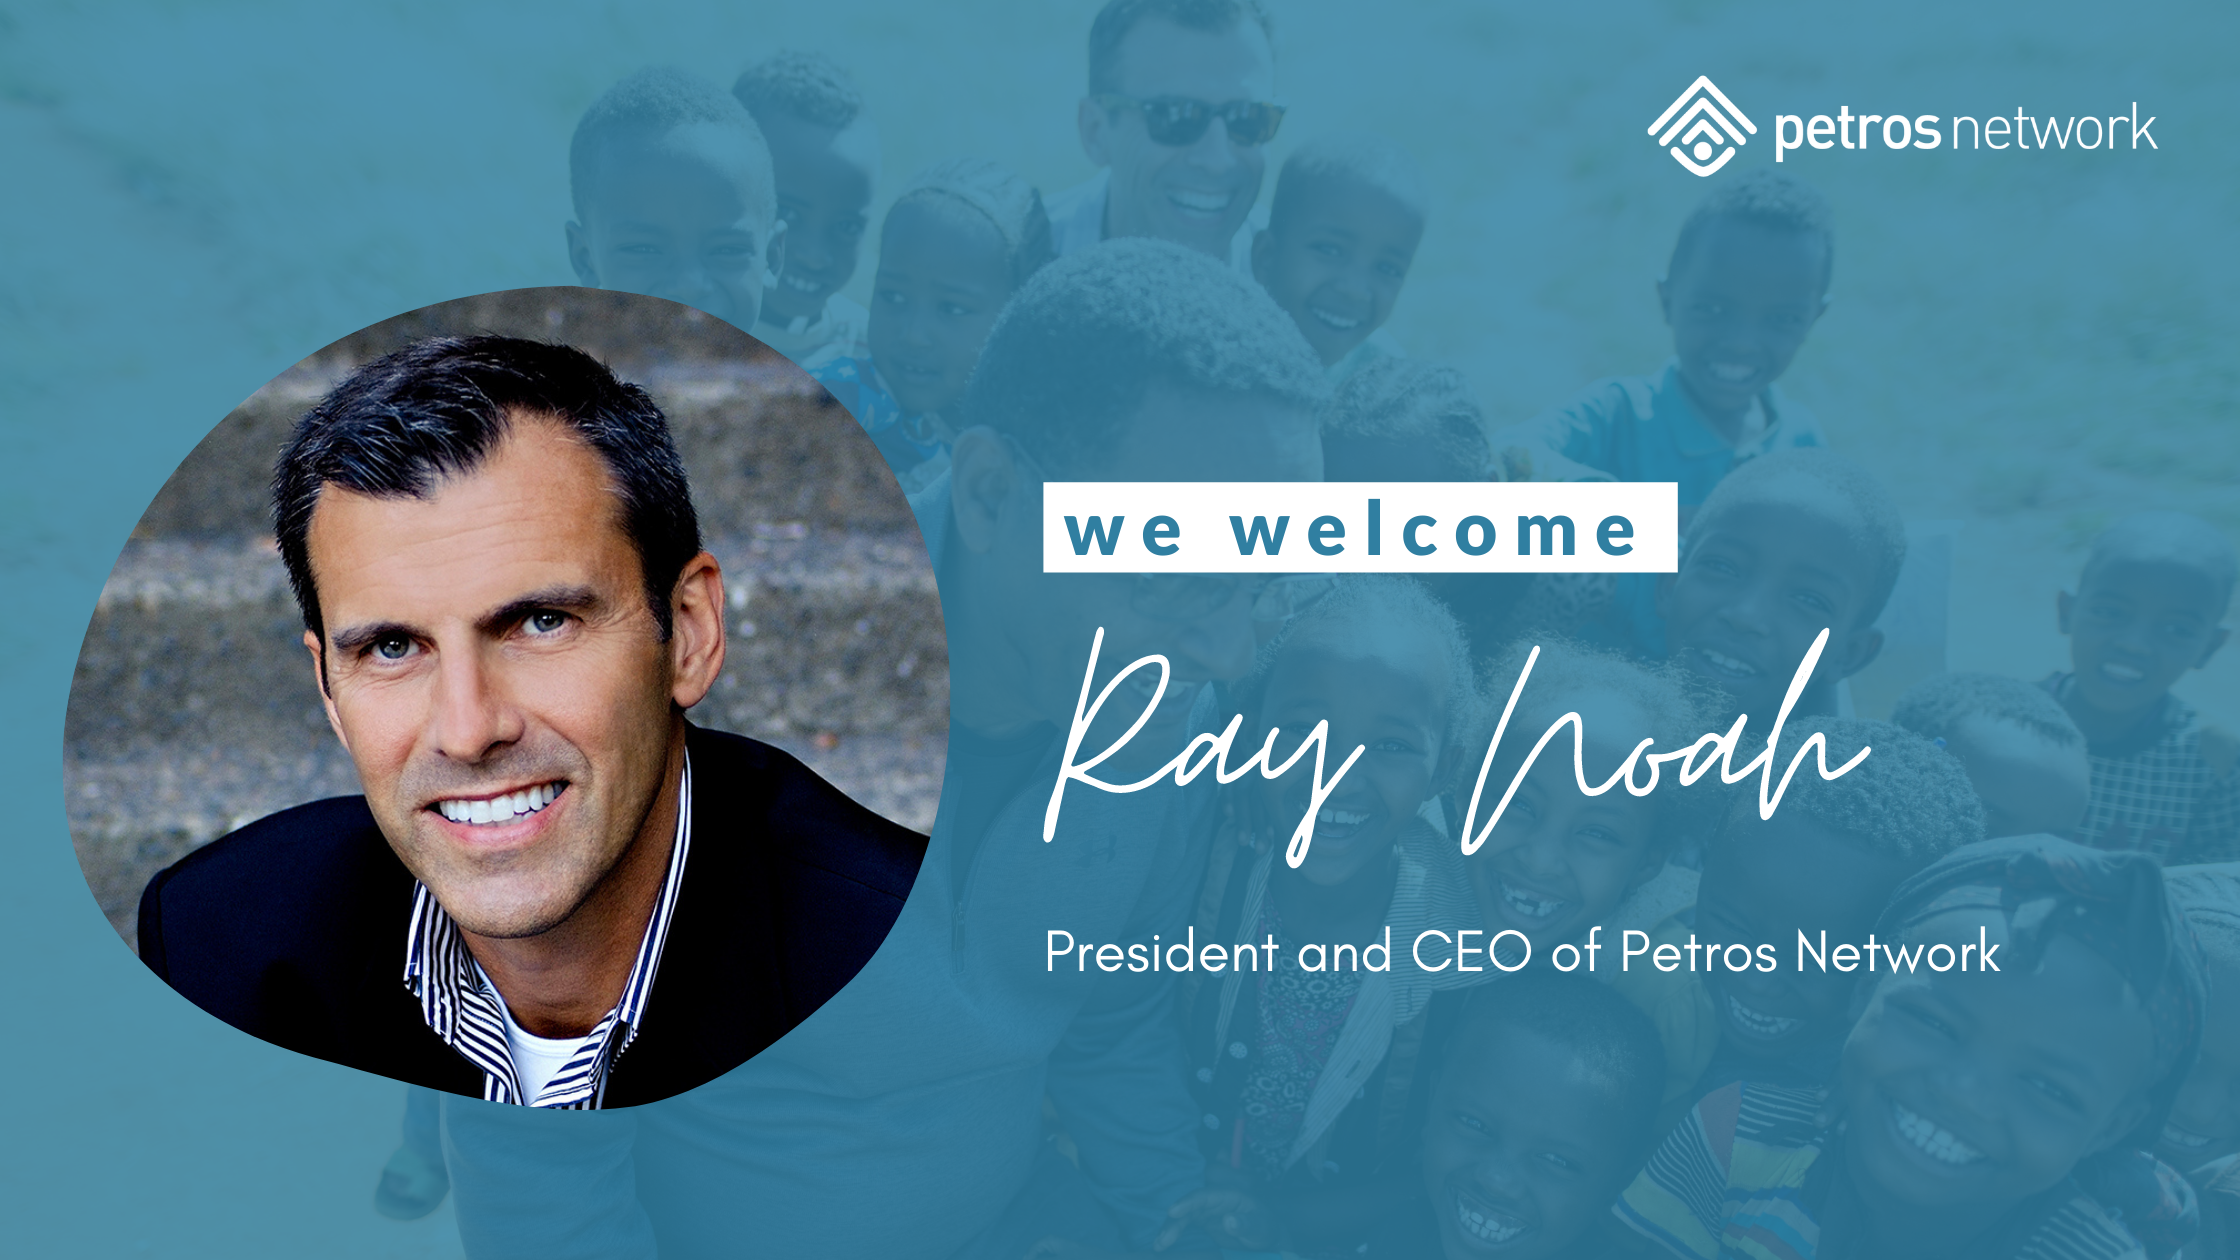 Ray Noah join Petros Network in a full-time capacity as President and CEO.